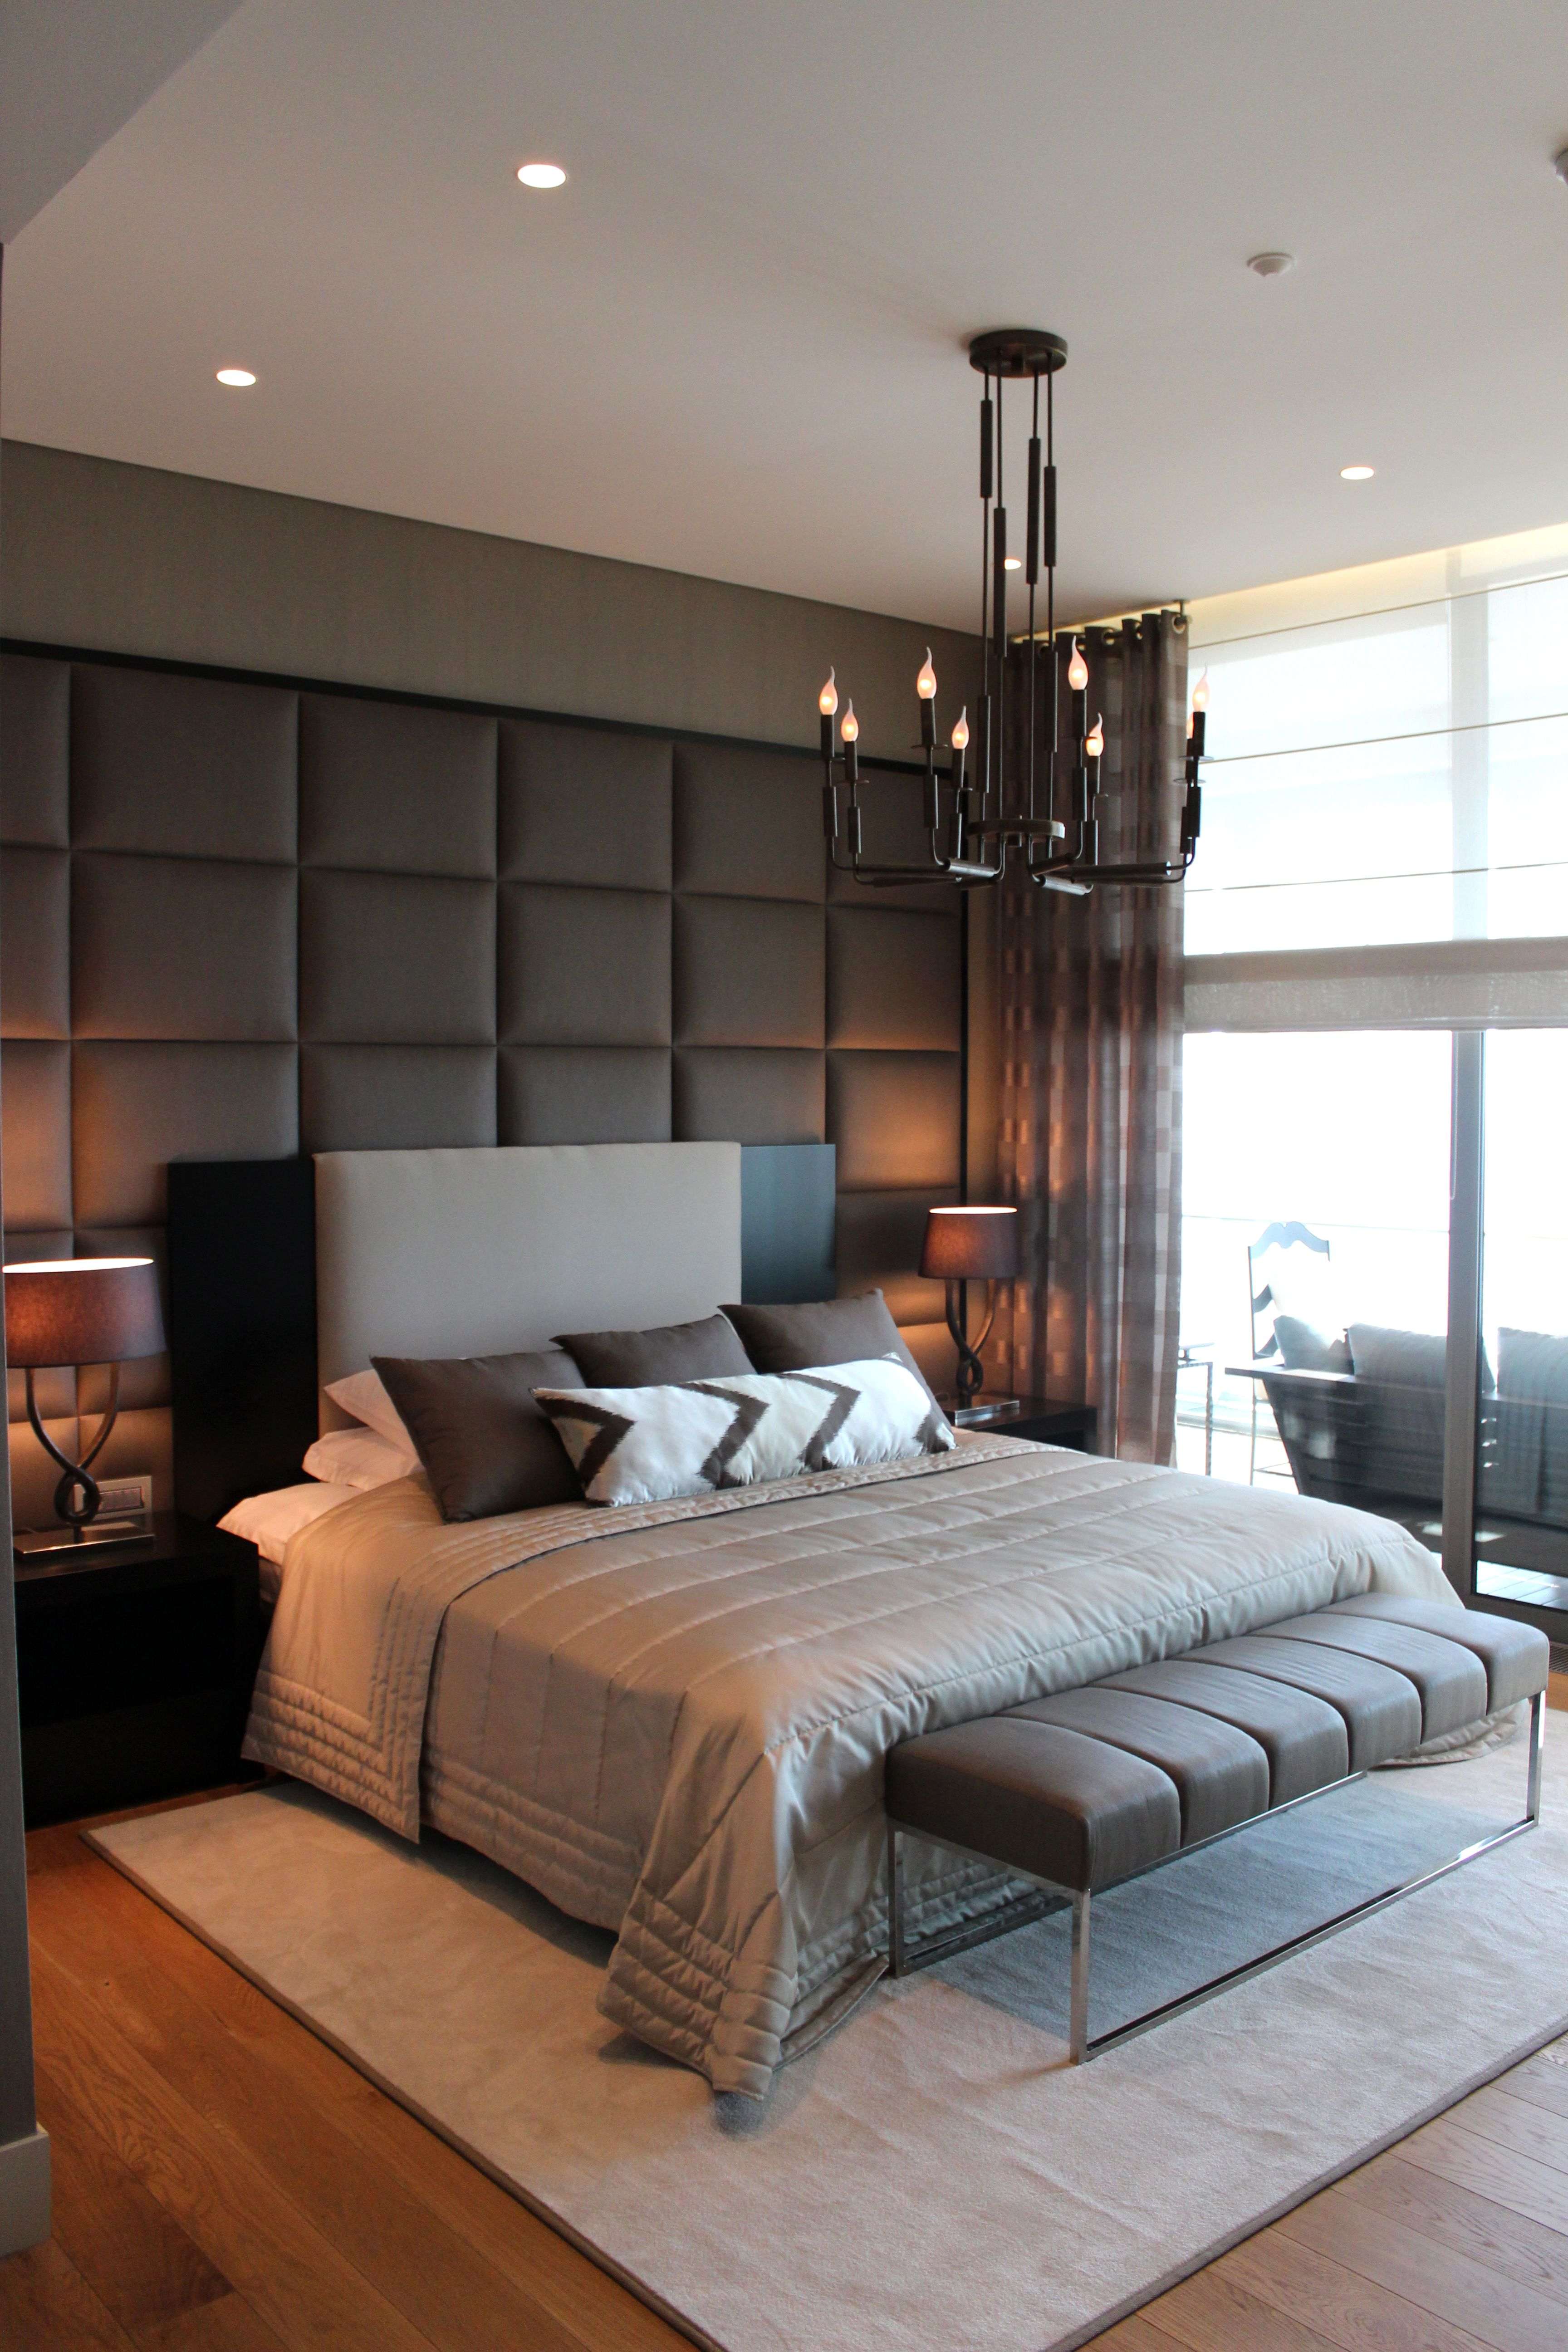 leather panelling accent wall can add luxurious character to your bedroom Schlafzimmer IdeenKinderzimmerEinrichten